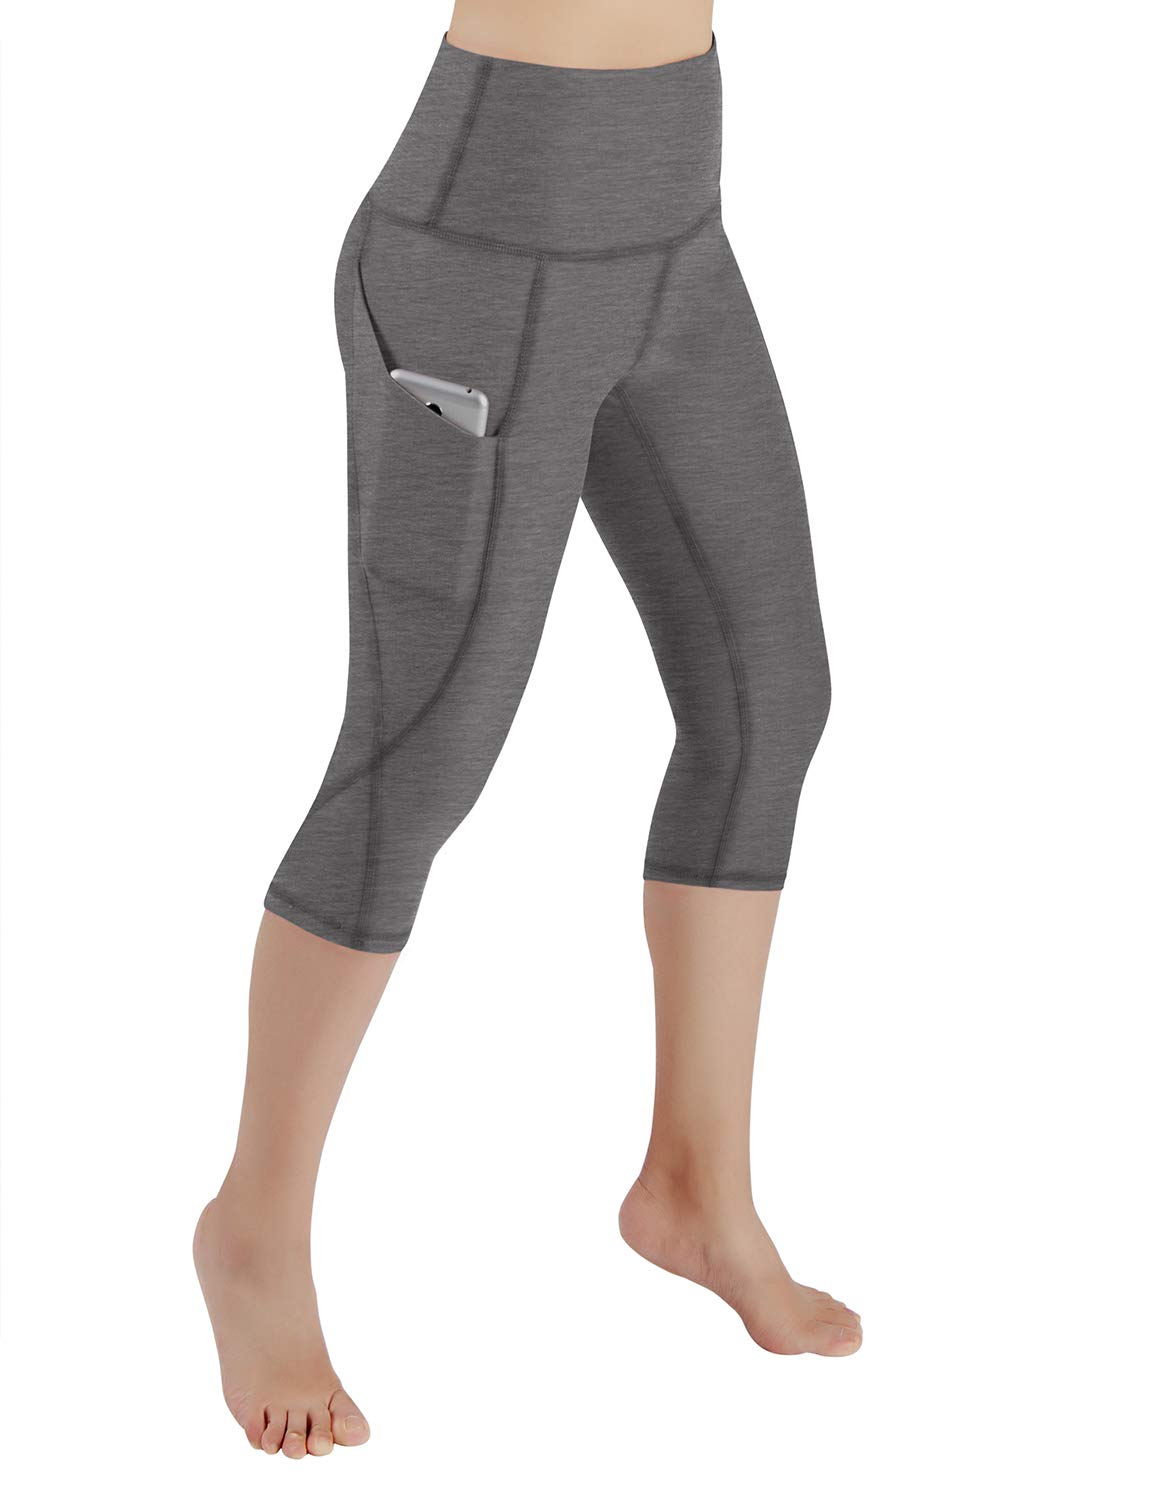 ODODOS High Waist Out Pocket Yoga Capris Pants Tummy Control Workout Running 4 Way Stretch Yoga Leggings,Gray,X-Small